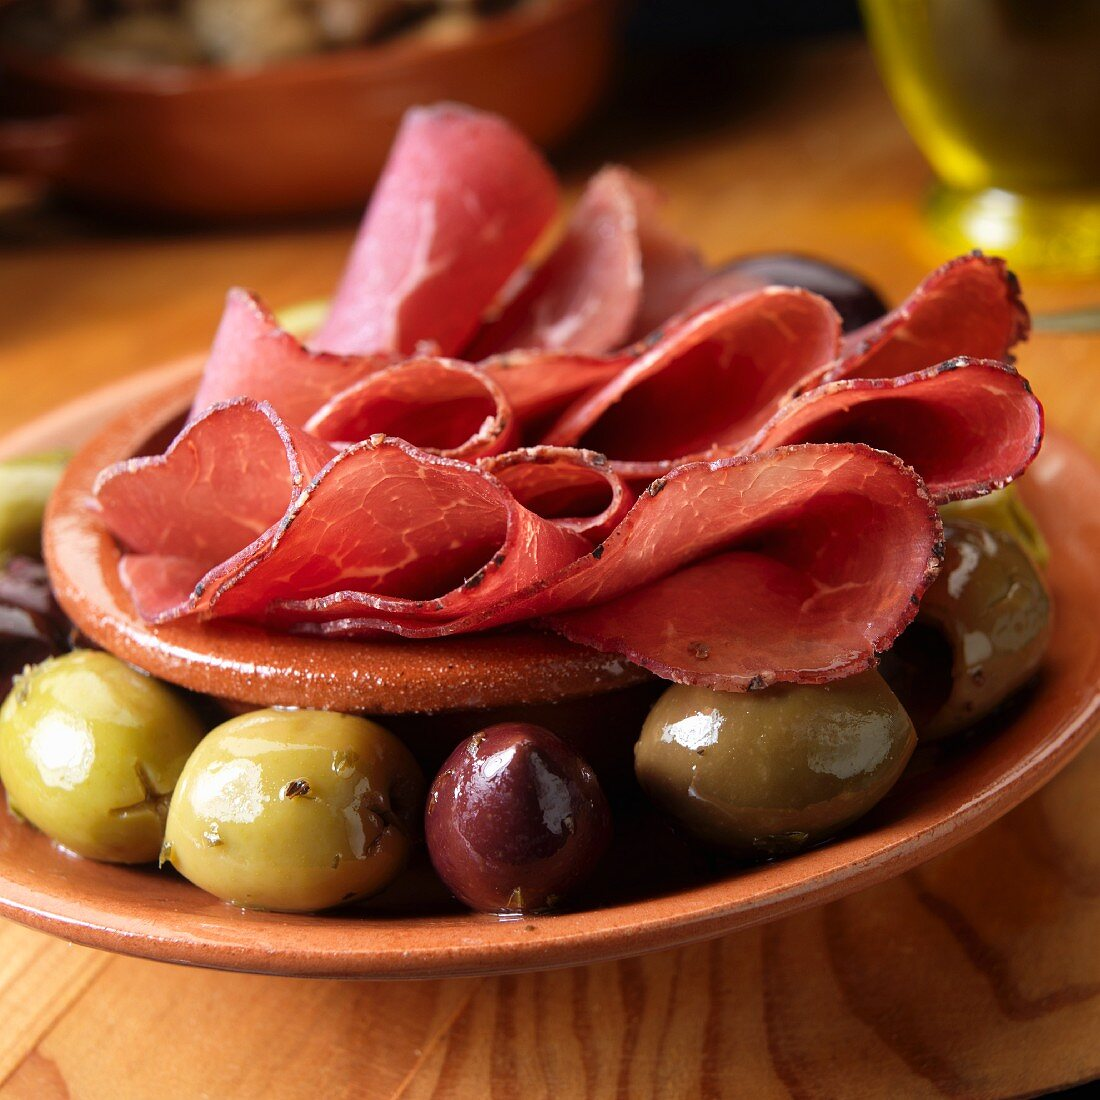 Bresaola, Italian air dried beef with olives as appetizer